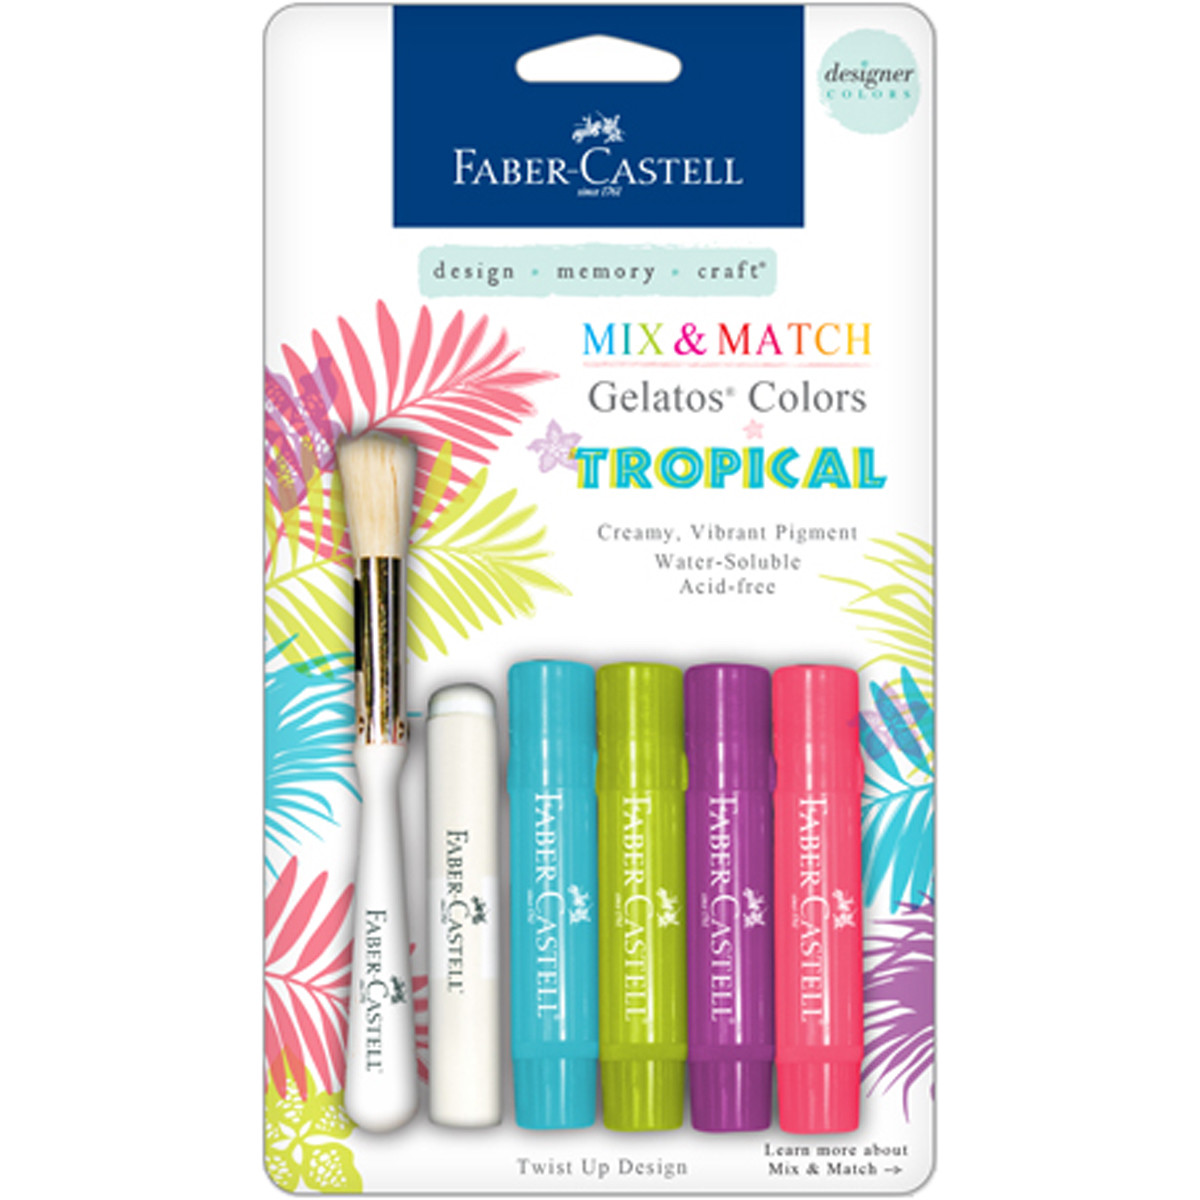 Faber-Castell TROPICAL Gelatos Set